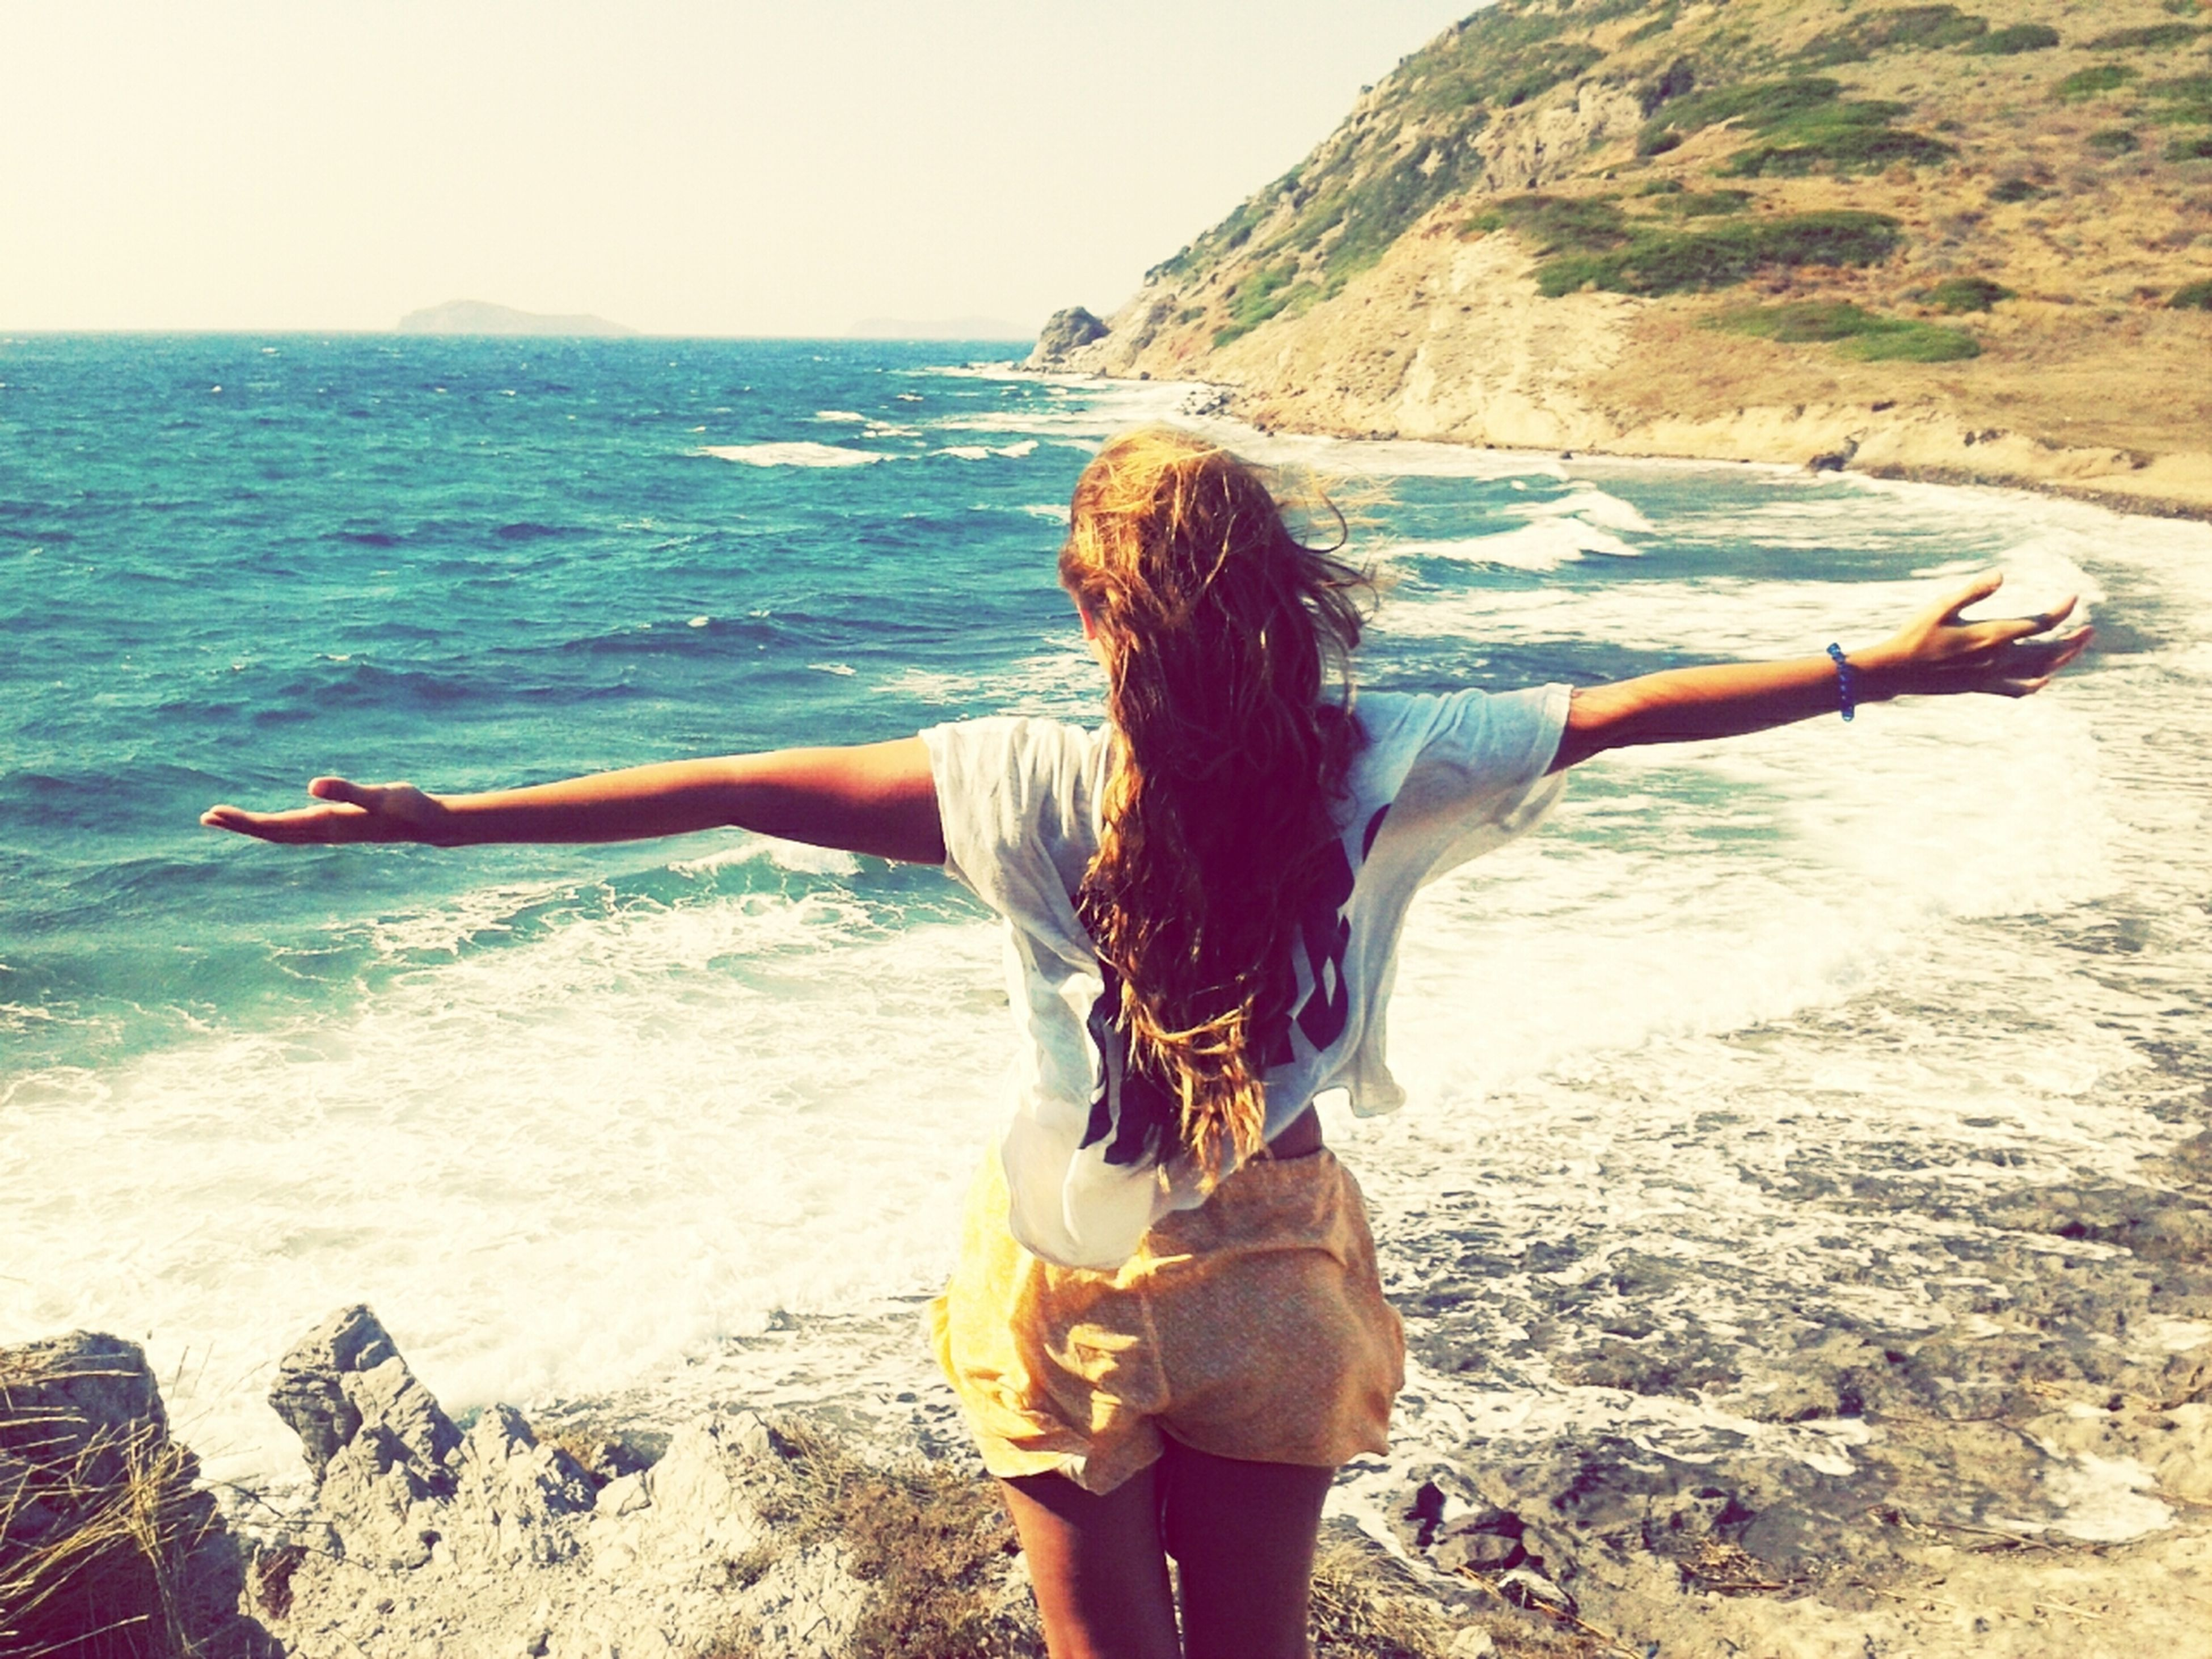 lifestyles, sea, long hair, beach, leisure activity, young women, water, young adult, shore, standing, casual clothing, vacations, person, full length, horizon over water, rear view